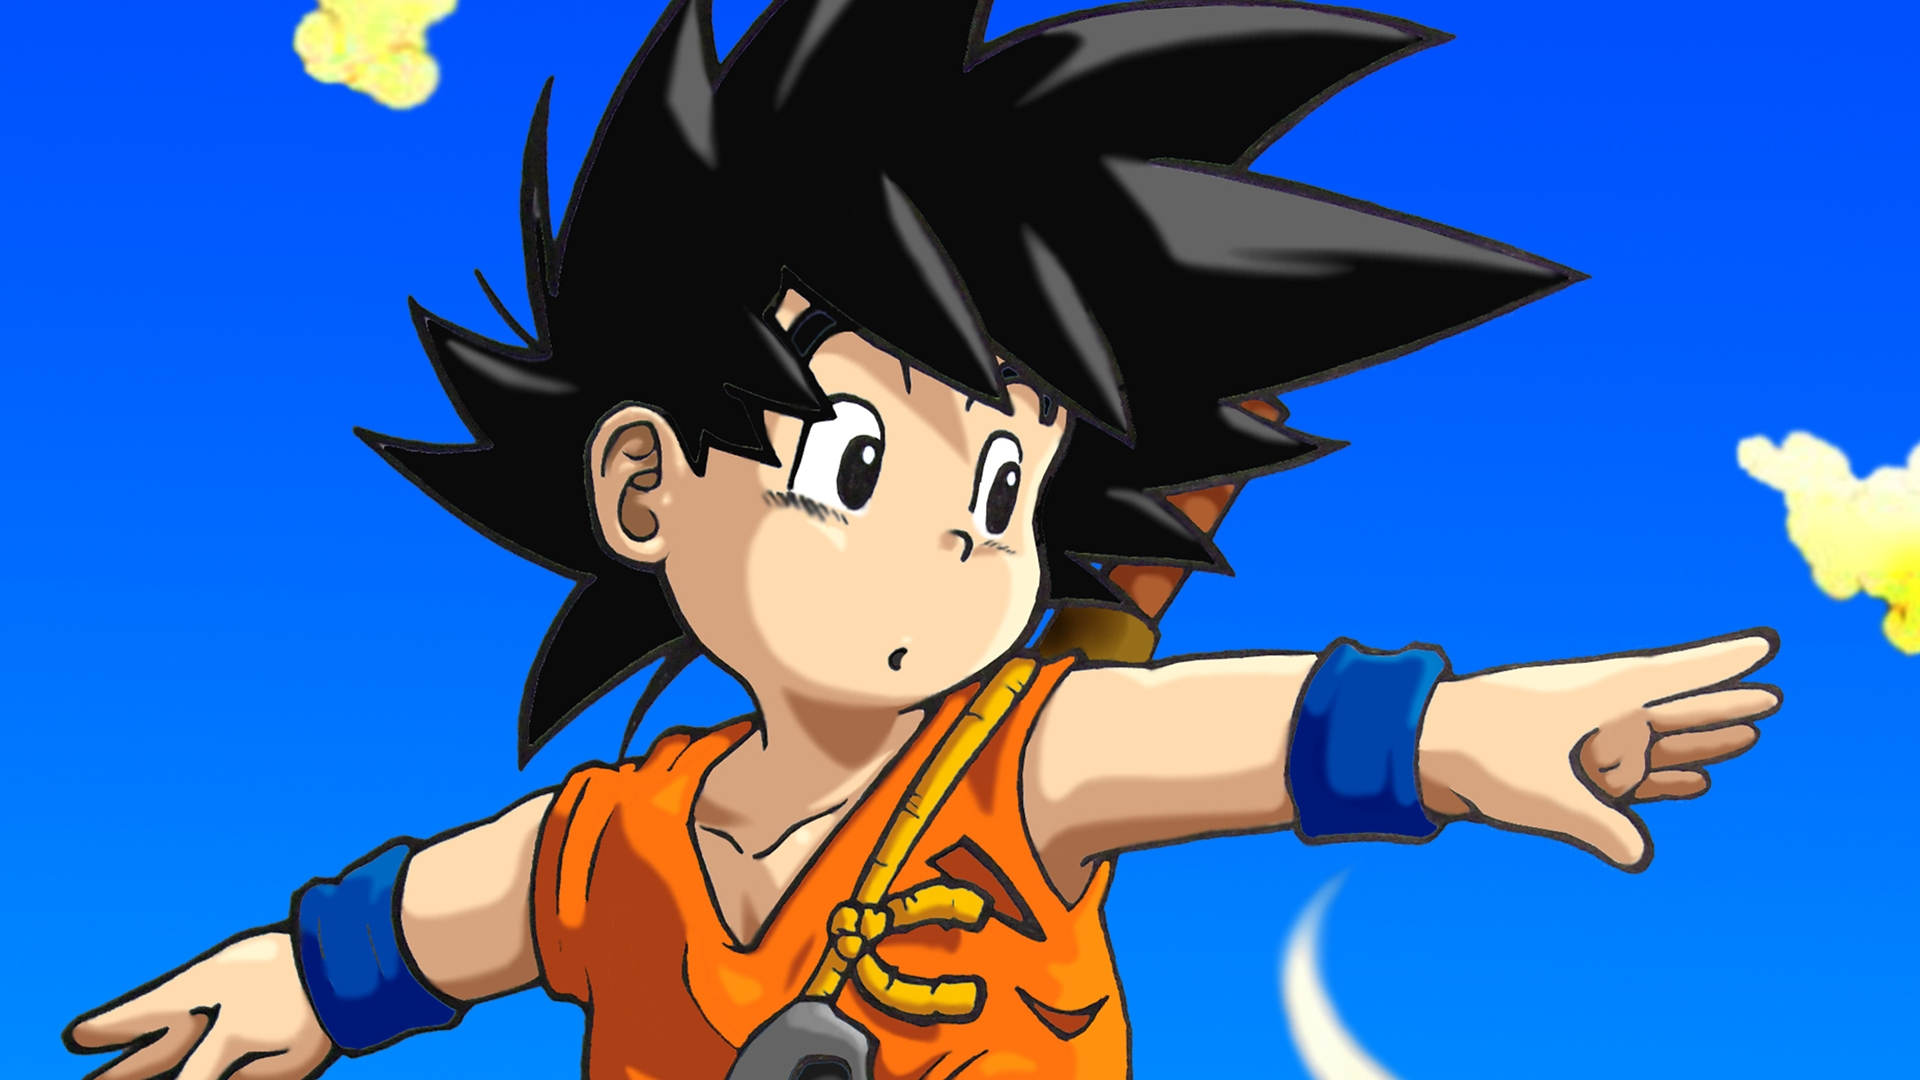 Son Goku   High Definition Wallpapers   HD wallpapers 1920x1080